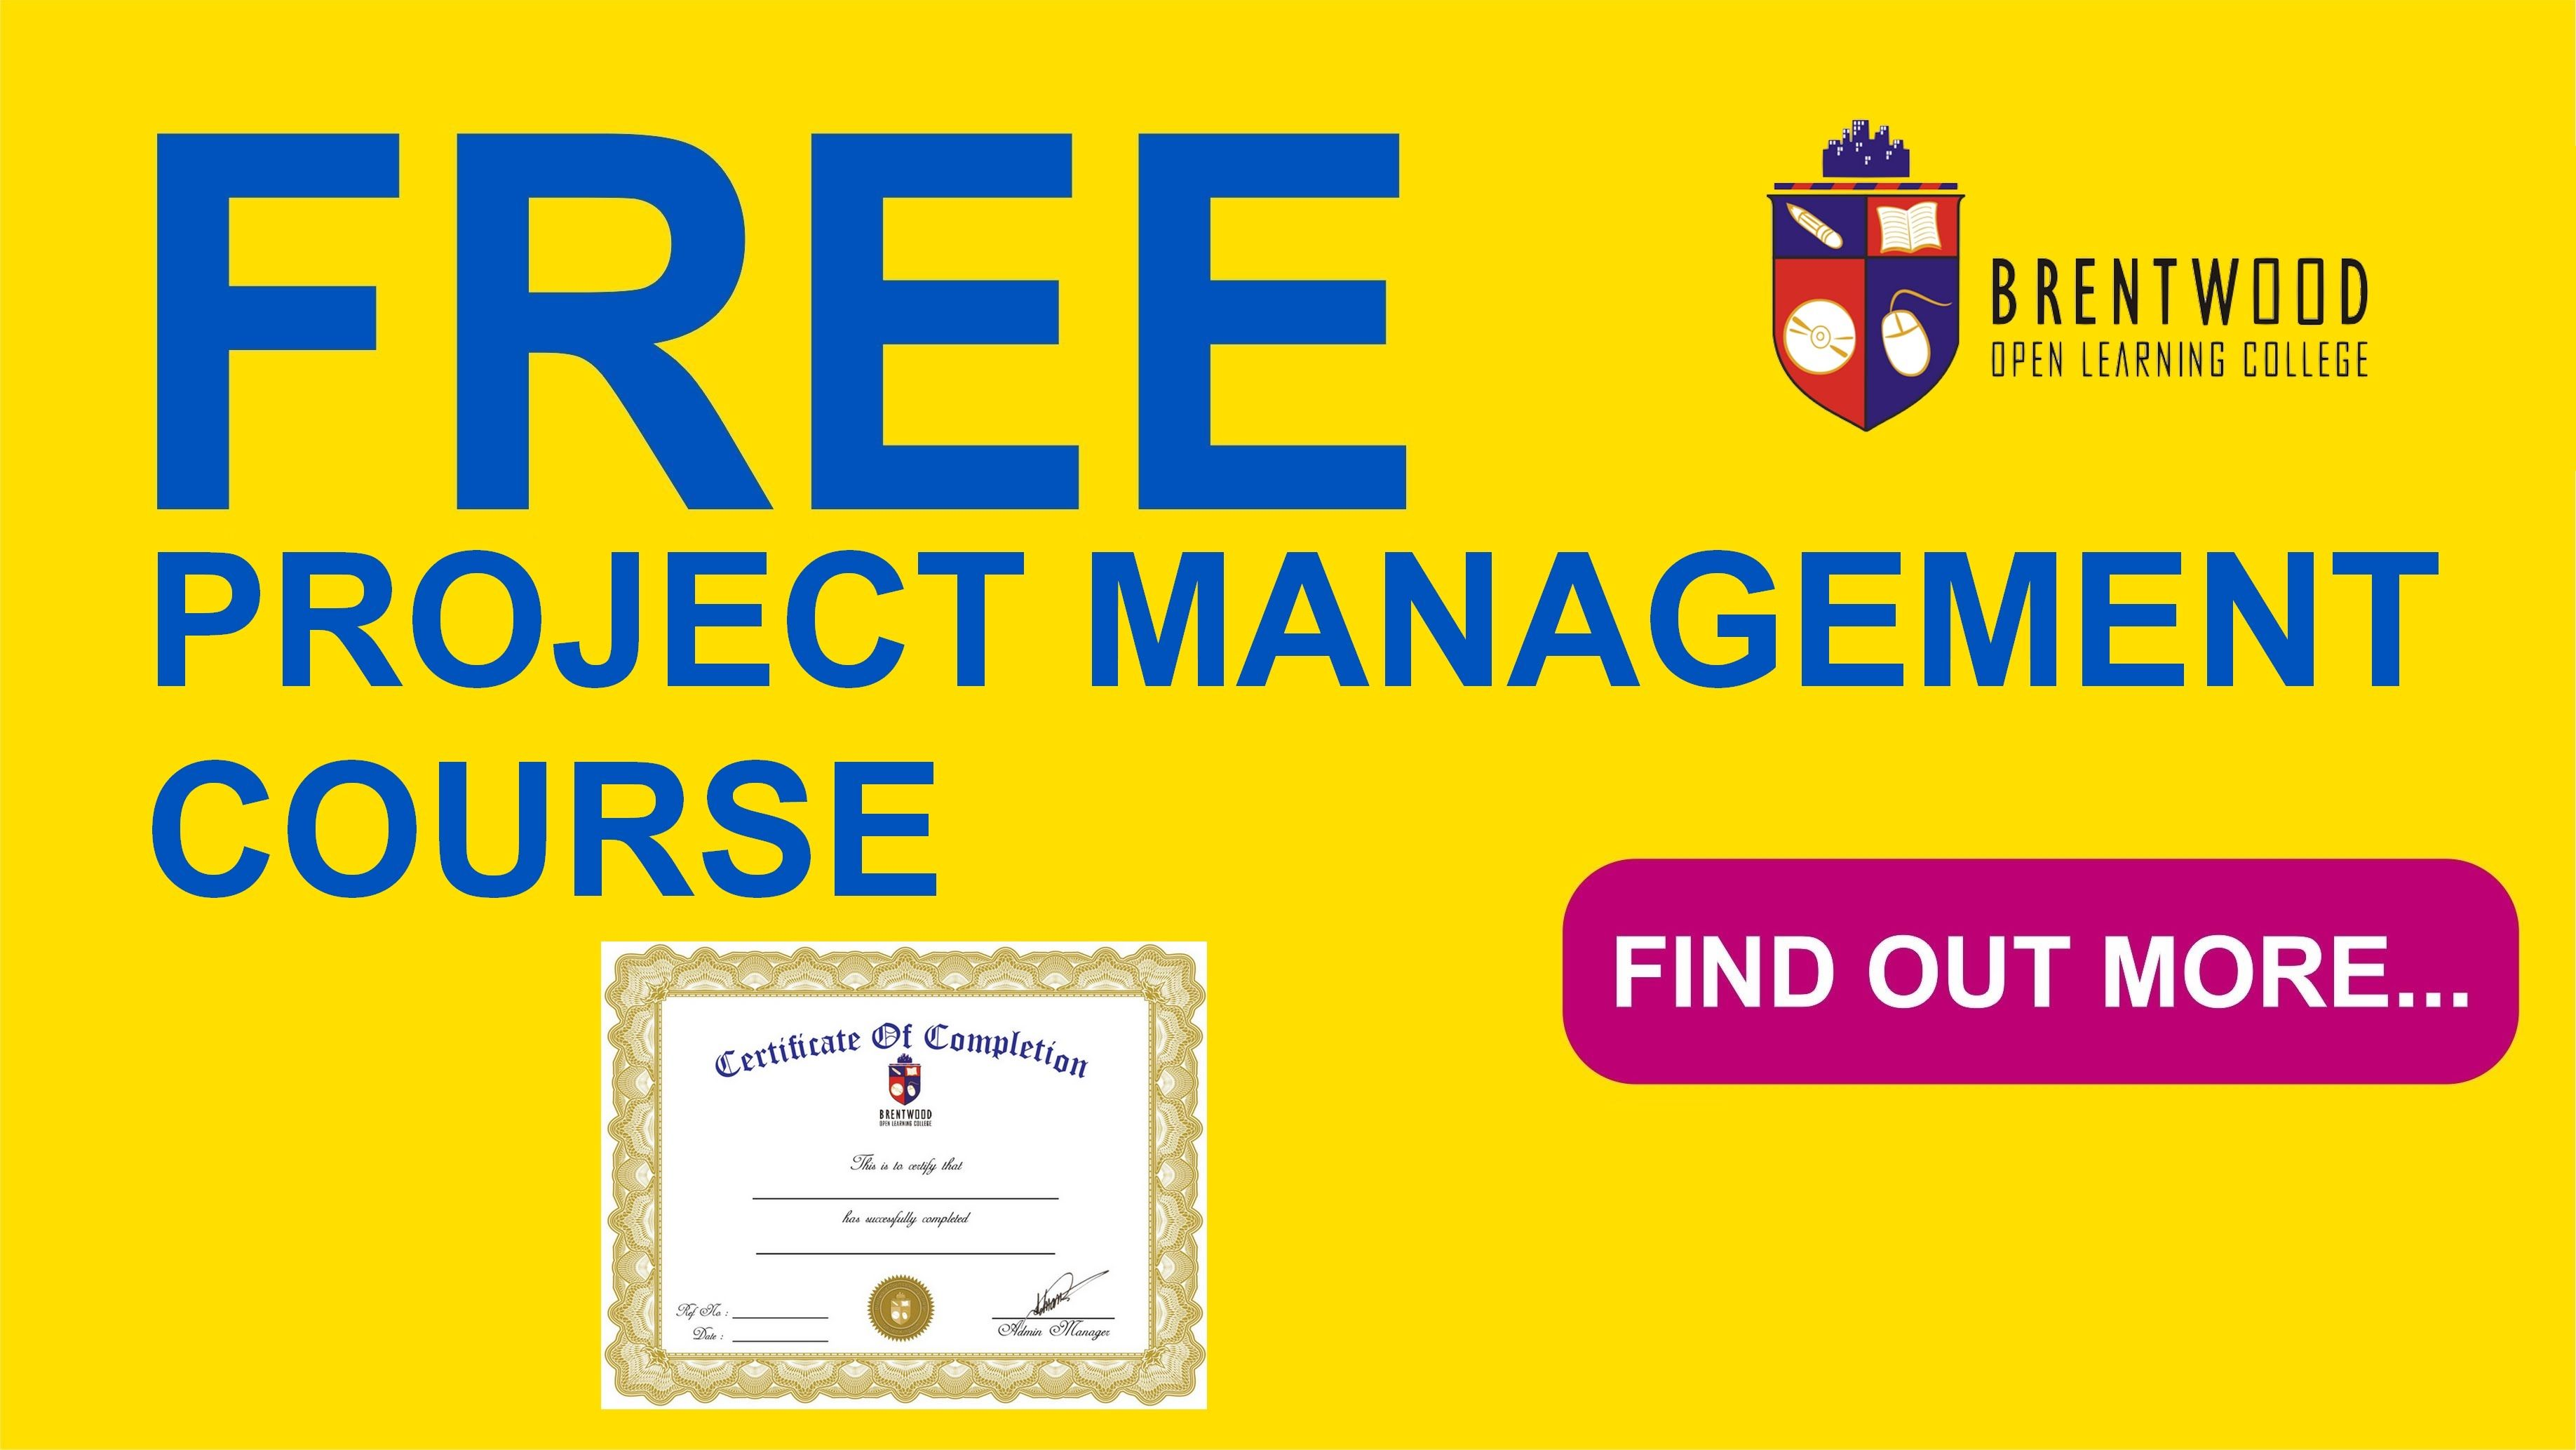 Project management course online free project management courses project management course online free project management courses online xflitez Image collections